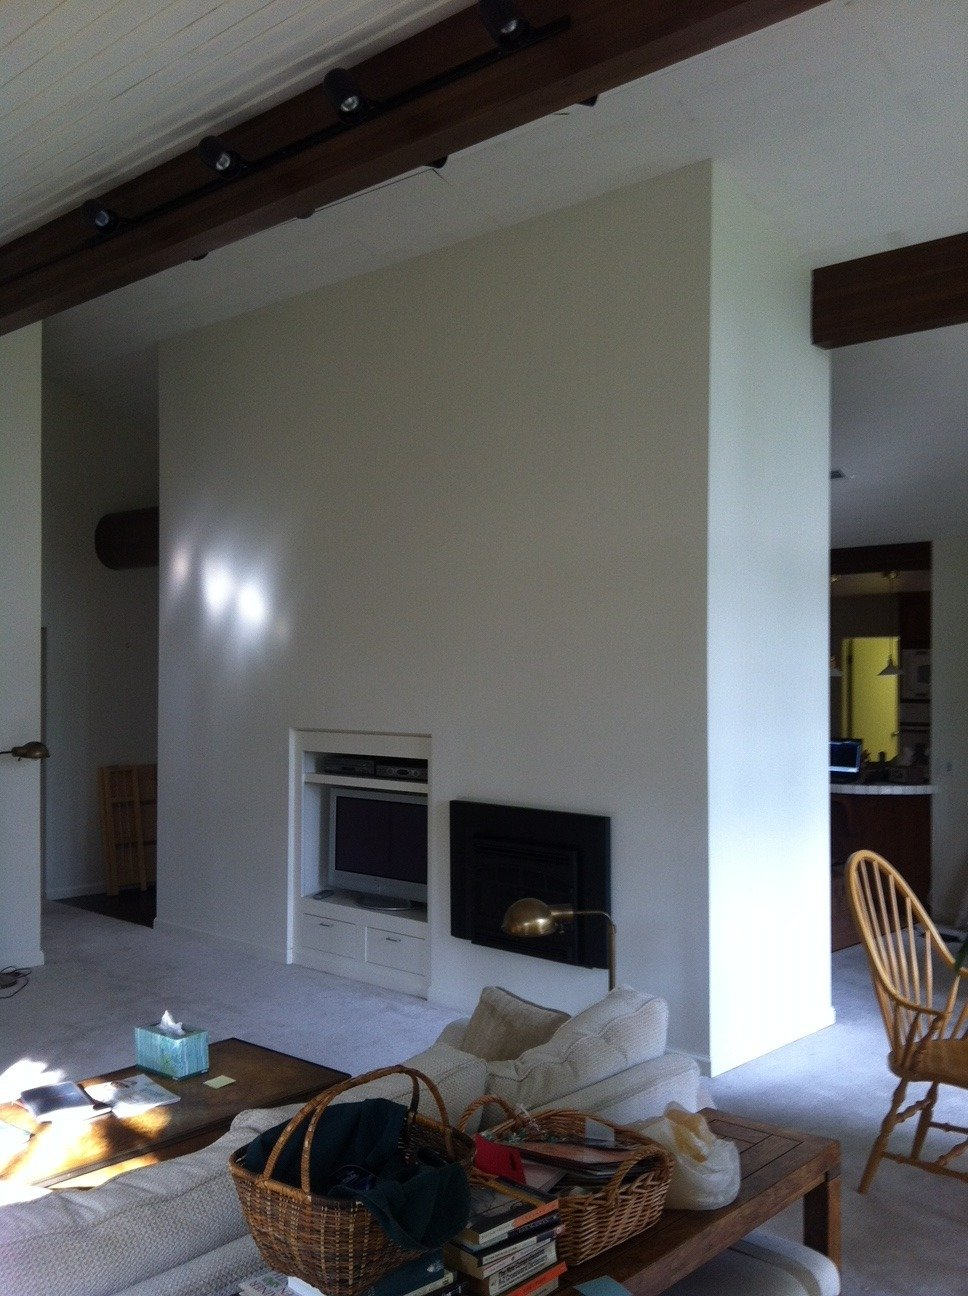 The fireplace covered in drywall.